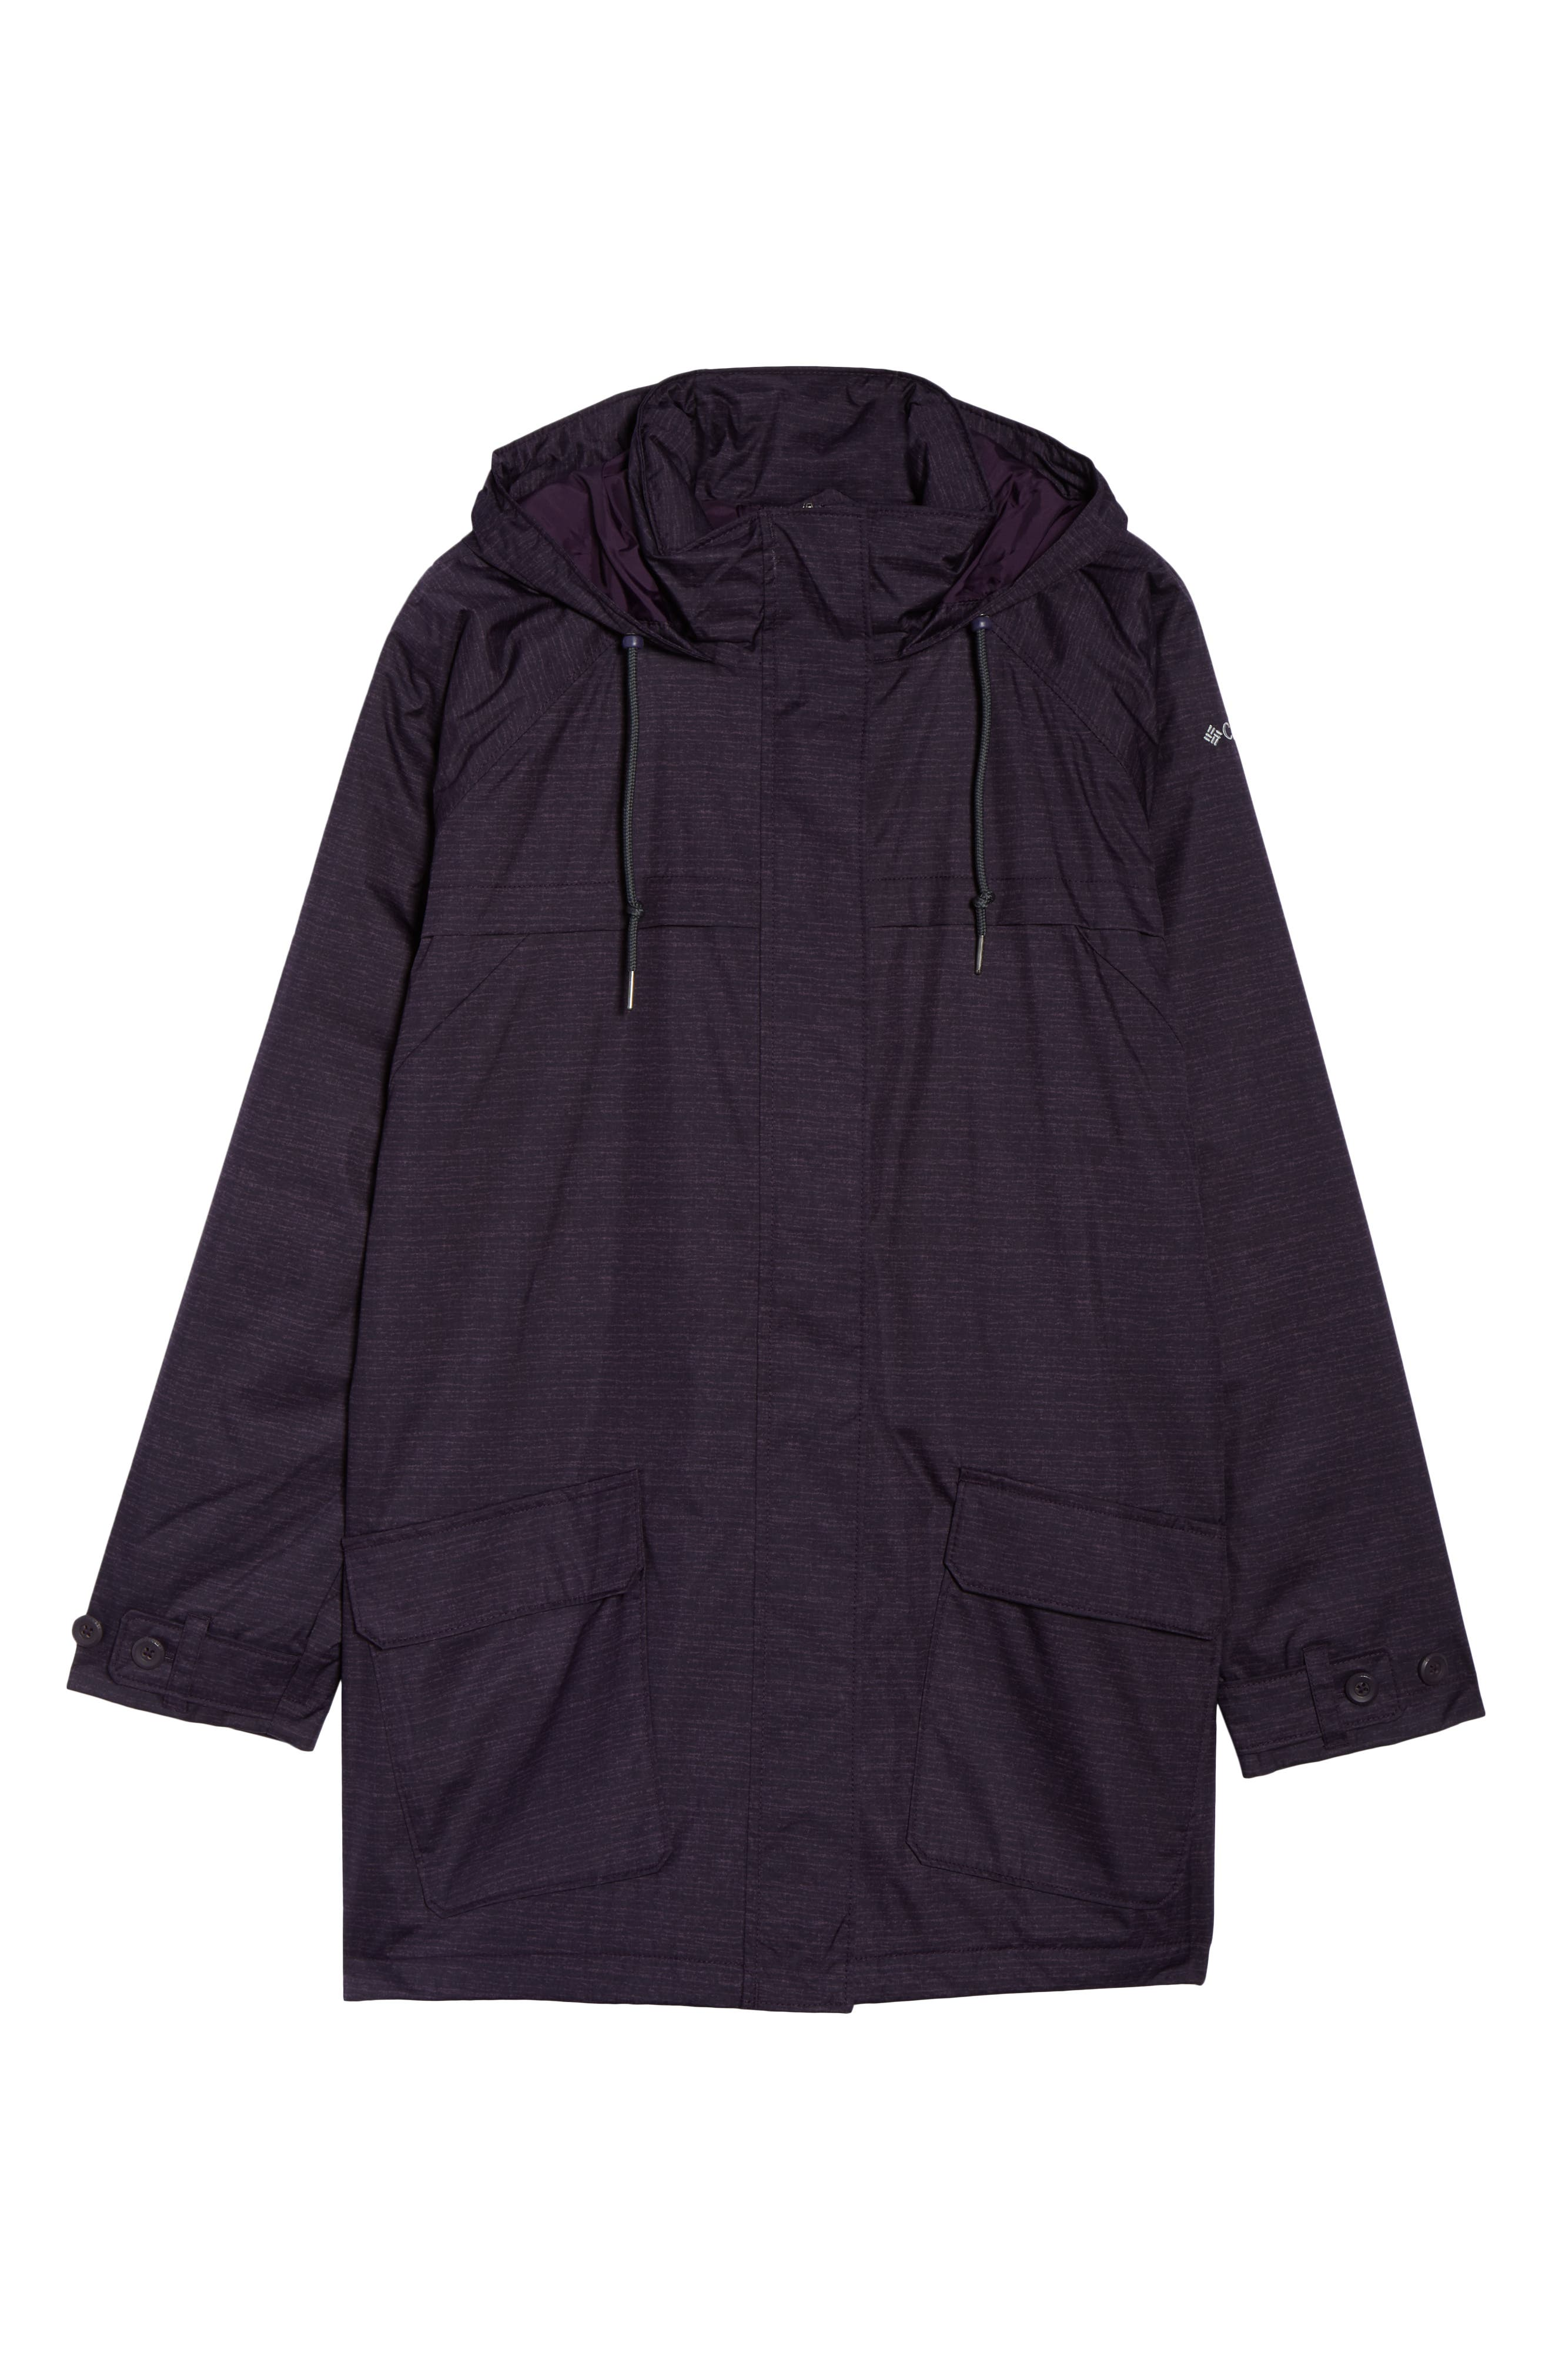 Lookout Crest Omni-Tech Waterproof Jacket,                             Alternate thumbnail 6, color,                             DARK PLUM TEXTURE PRINT